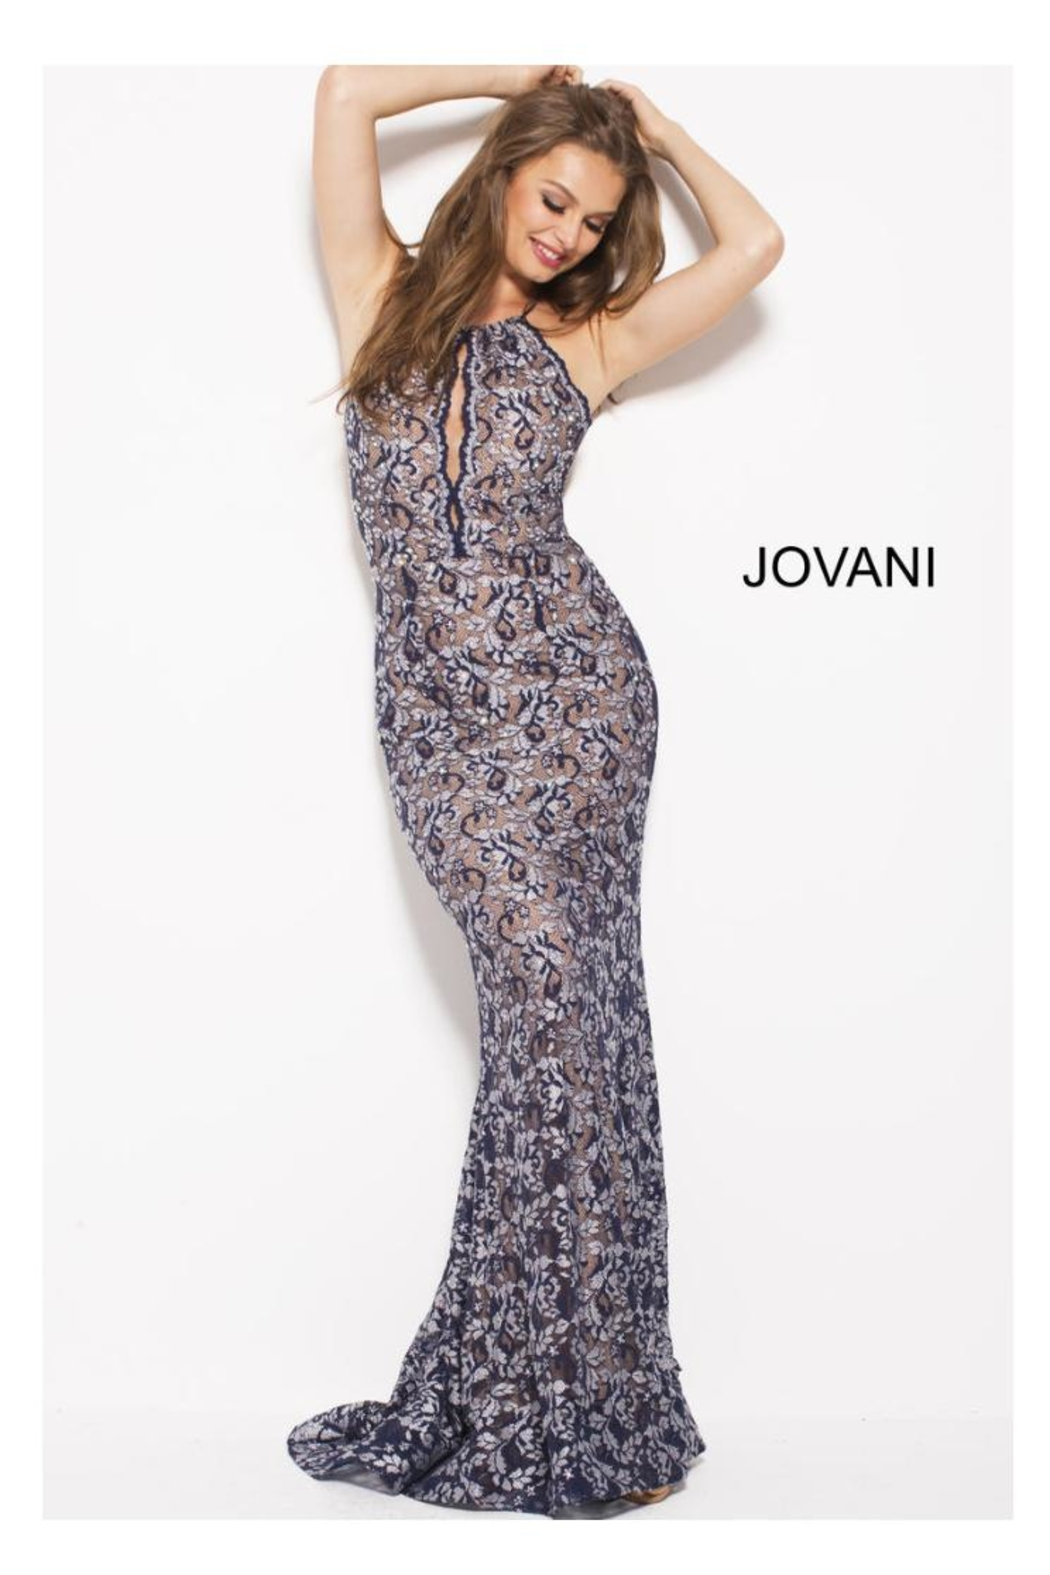 92246325f76 Jovani PROM Lace Sparkle Gown from Guilford by A s Unique Boutique ...